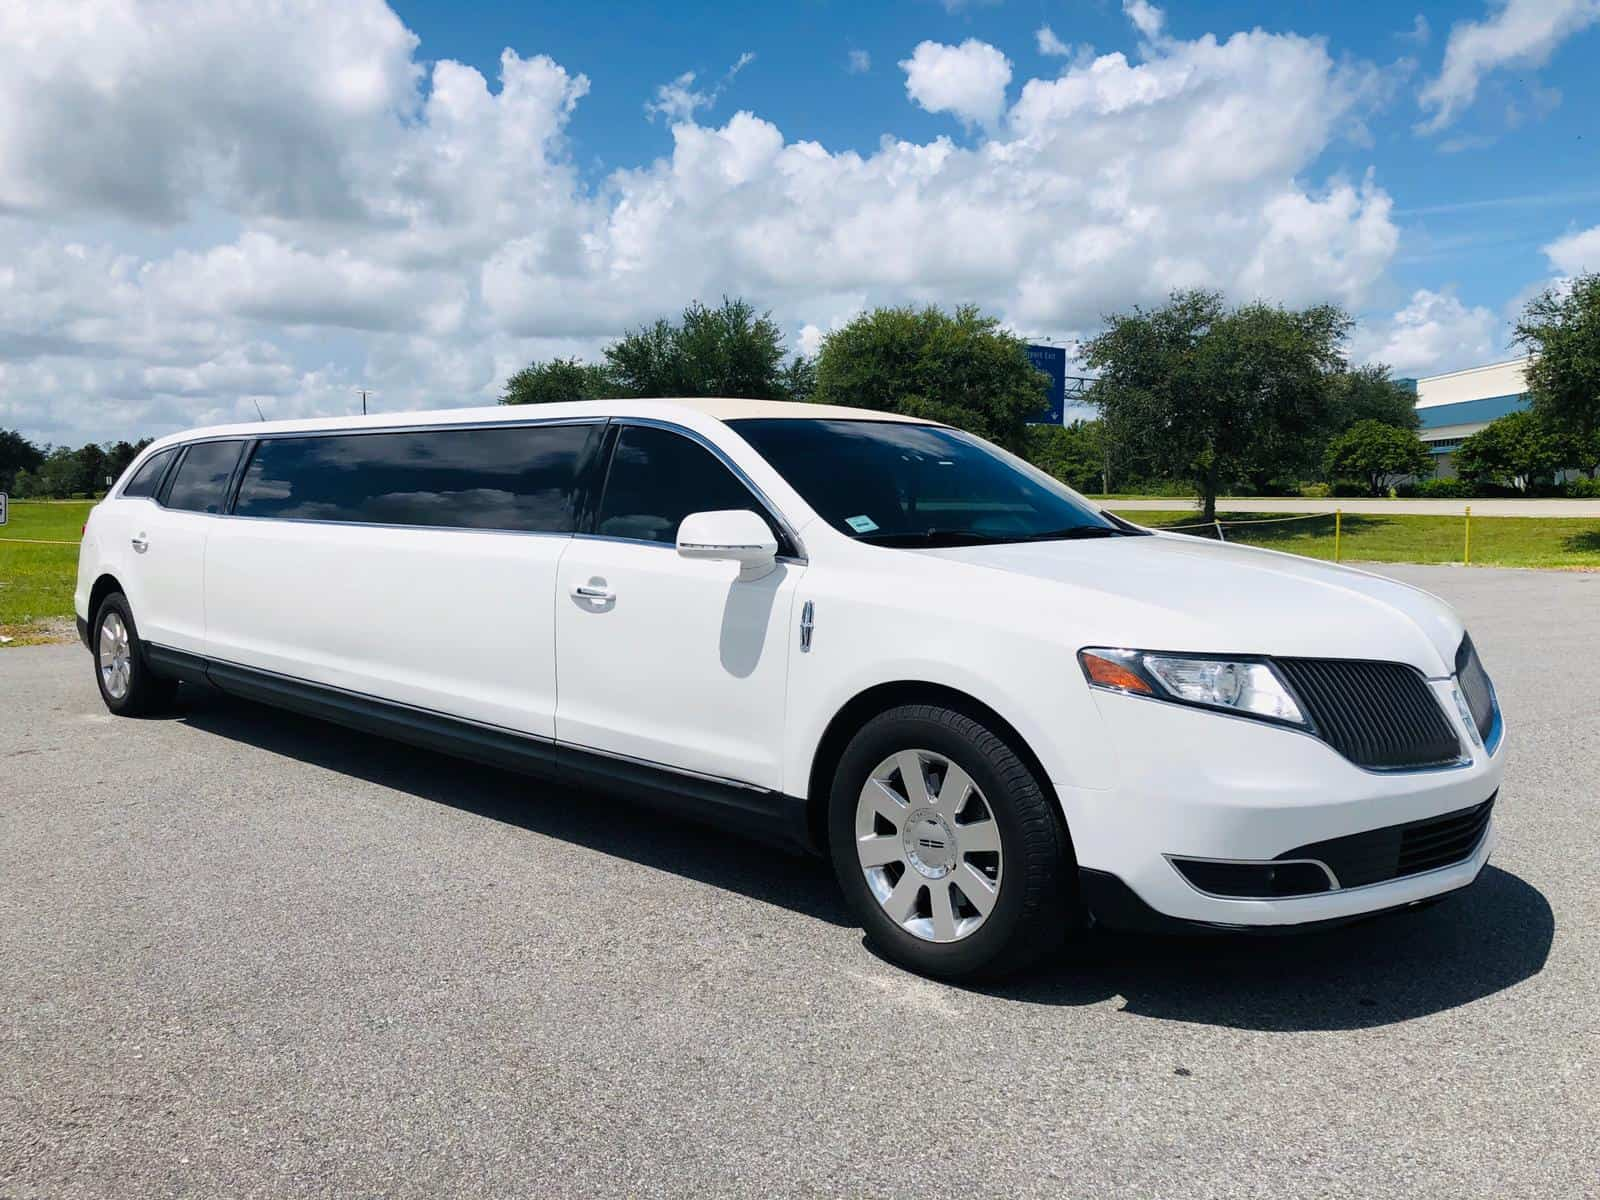 MKT Limo in Orlando